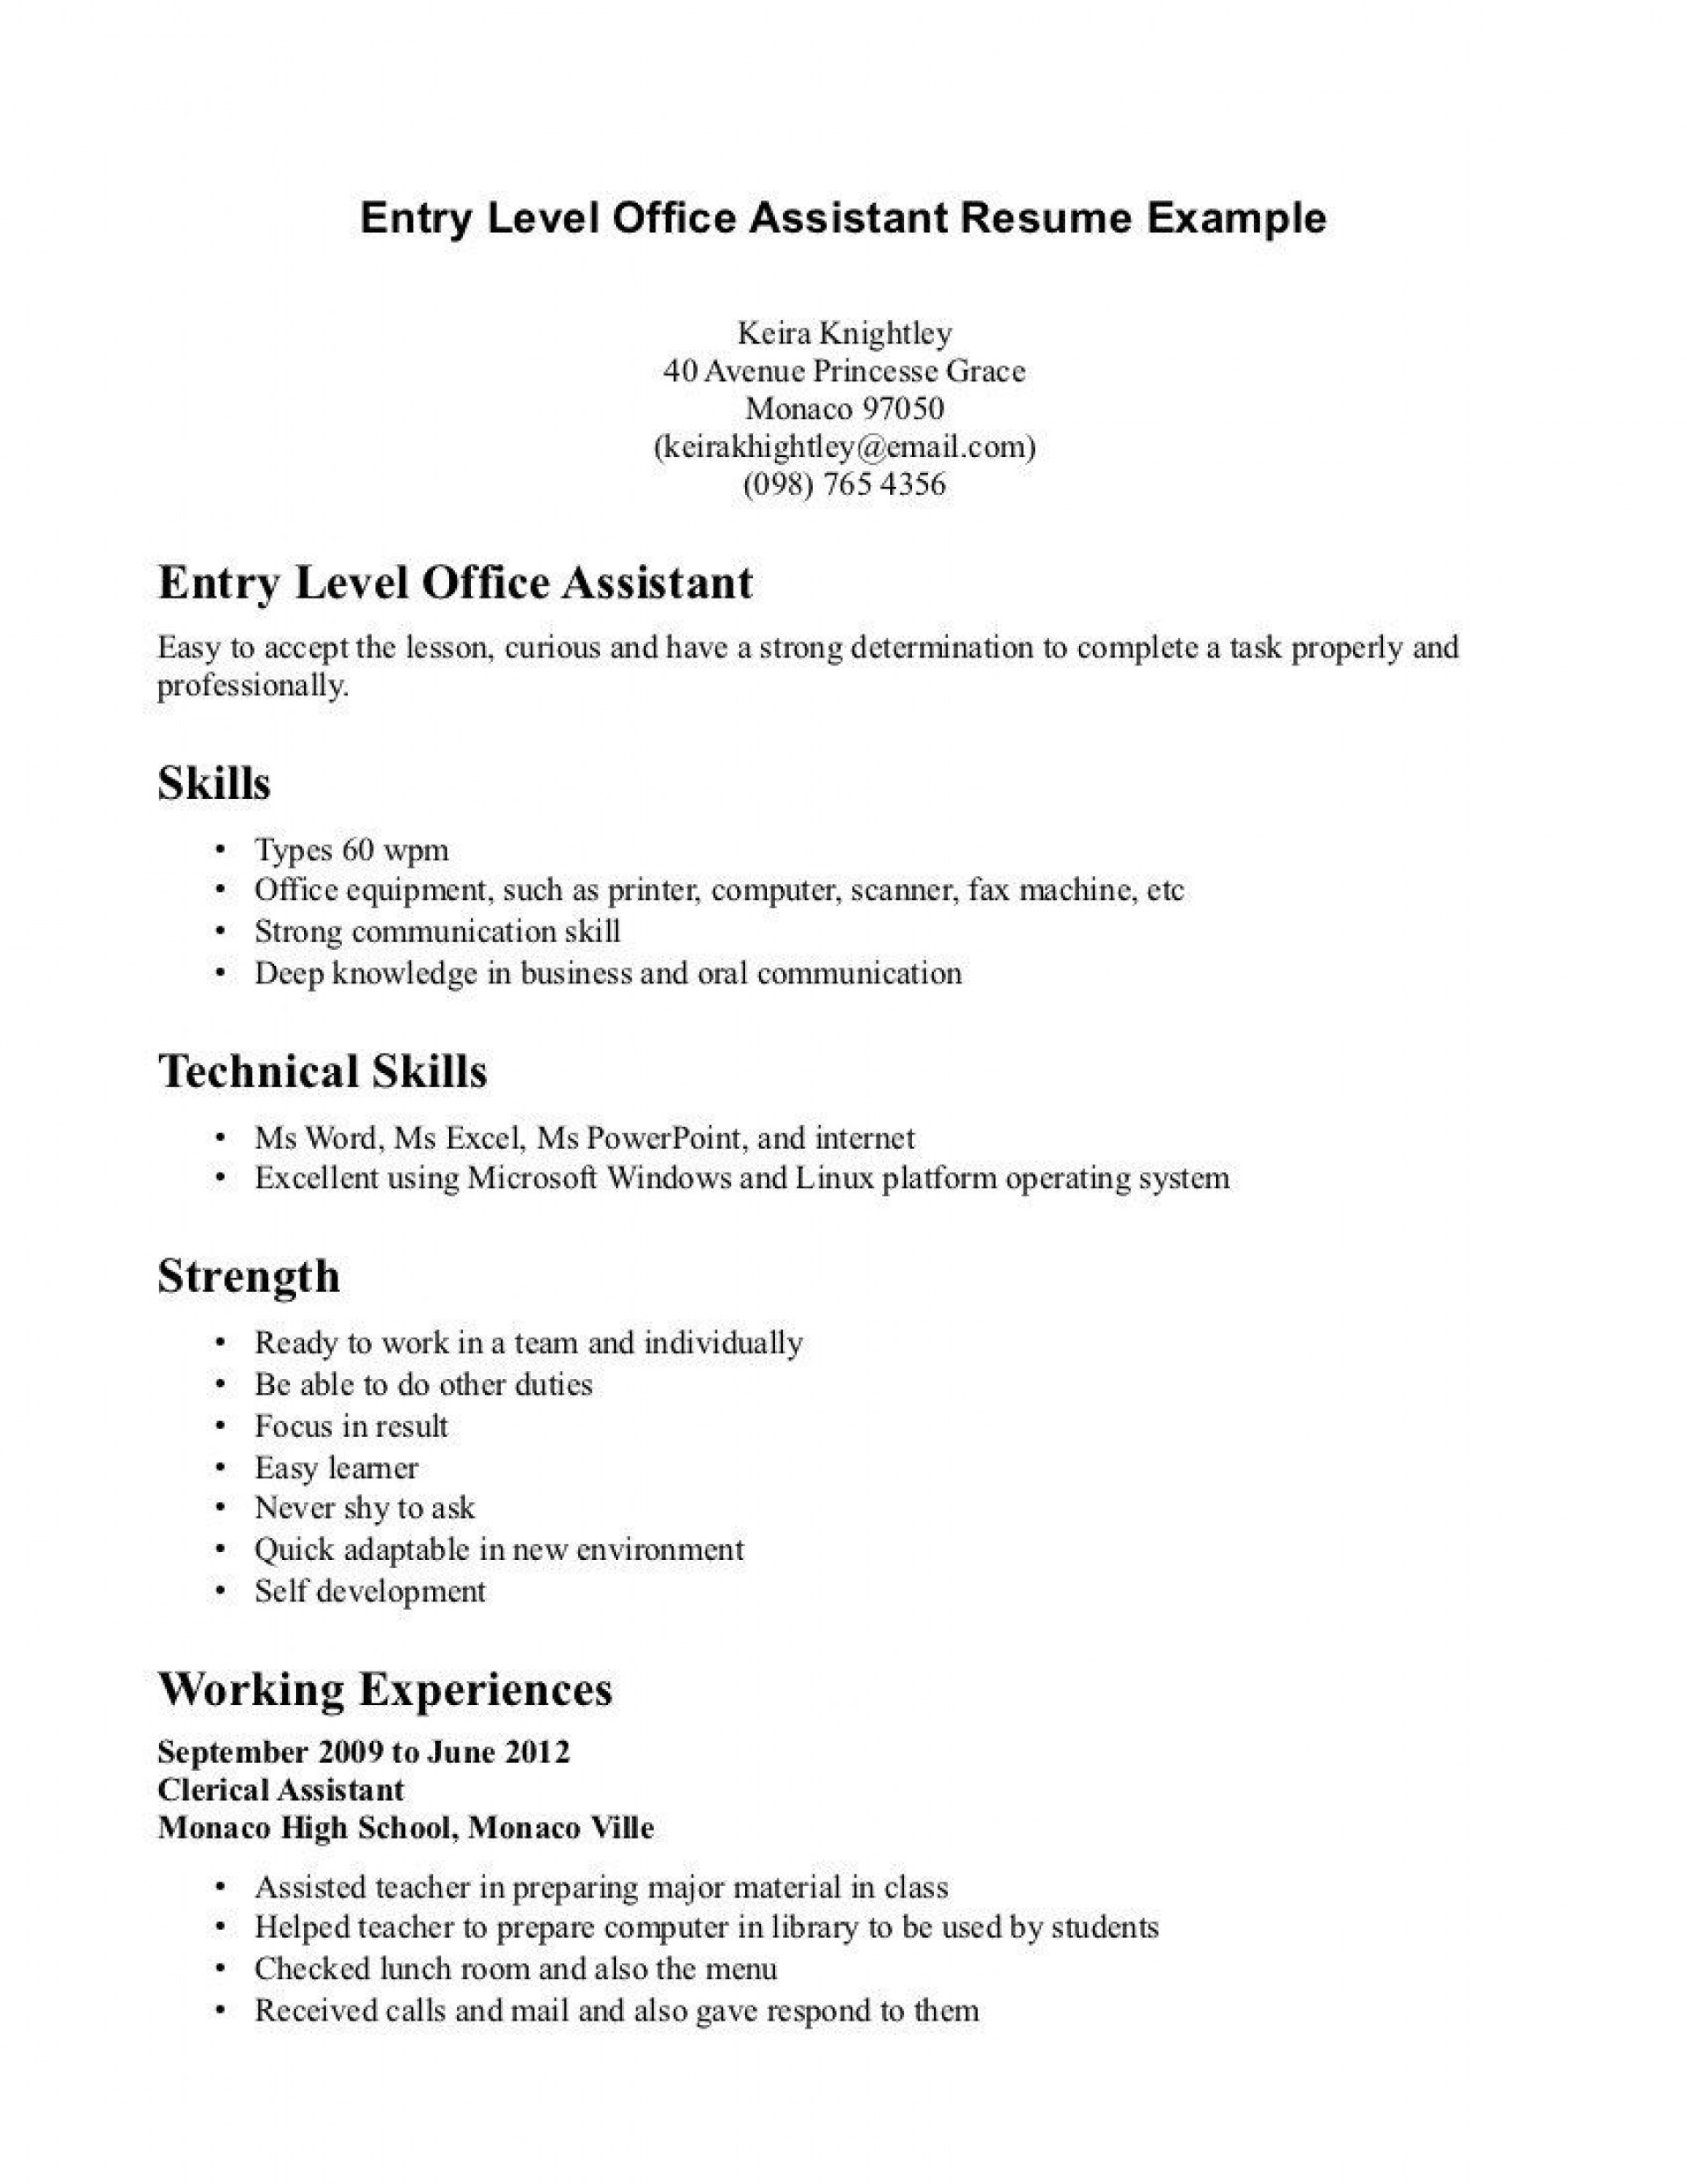 003 Unique Entry Level Resume Template Word Inspiration  Free For1920